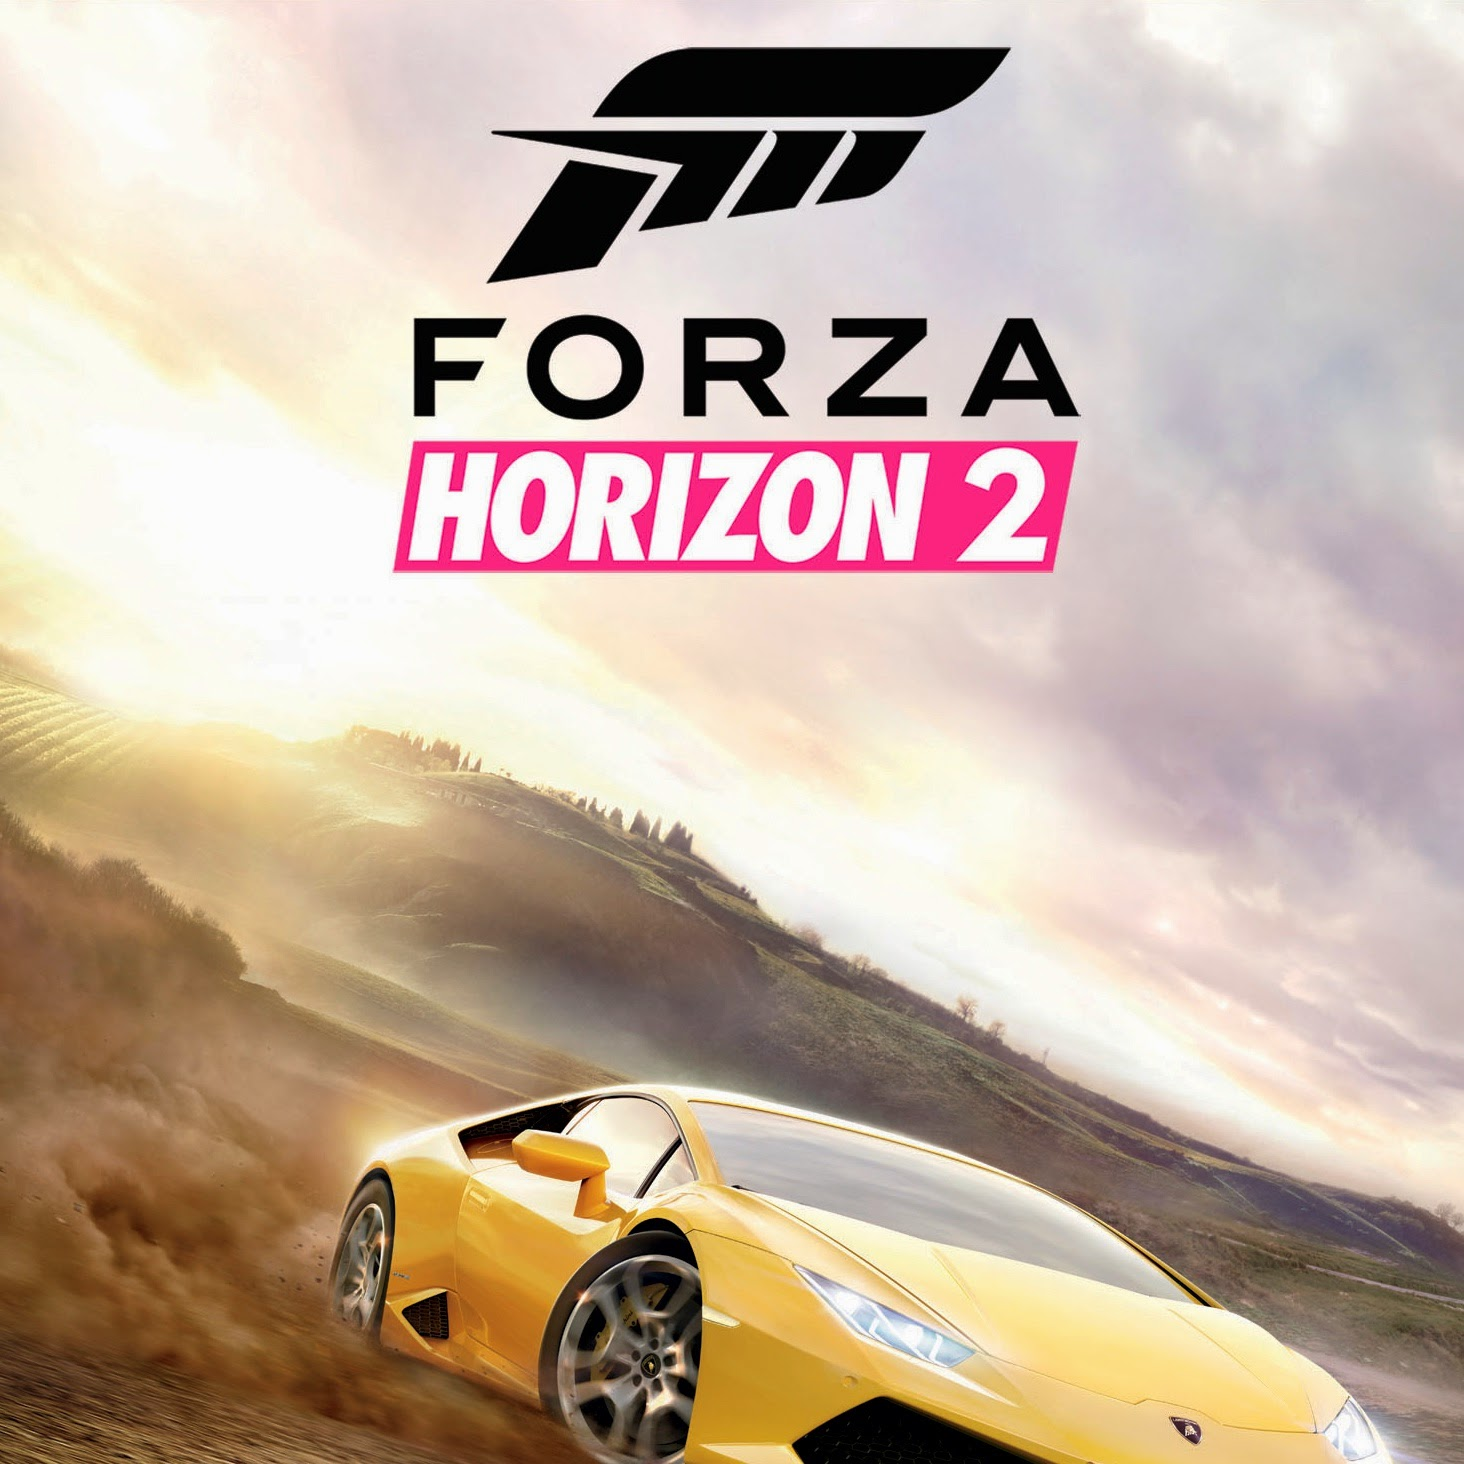 keyfuzion forza horizon 2 full game crack download free. Black Bedroom Furniture Sets. Home Design Ideas